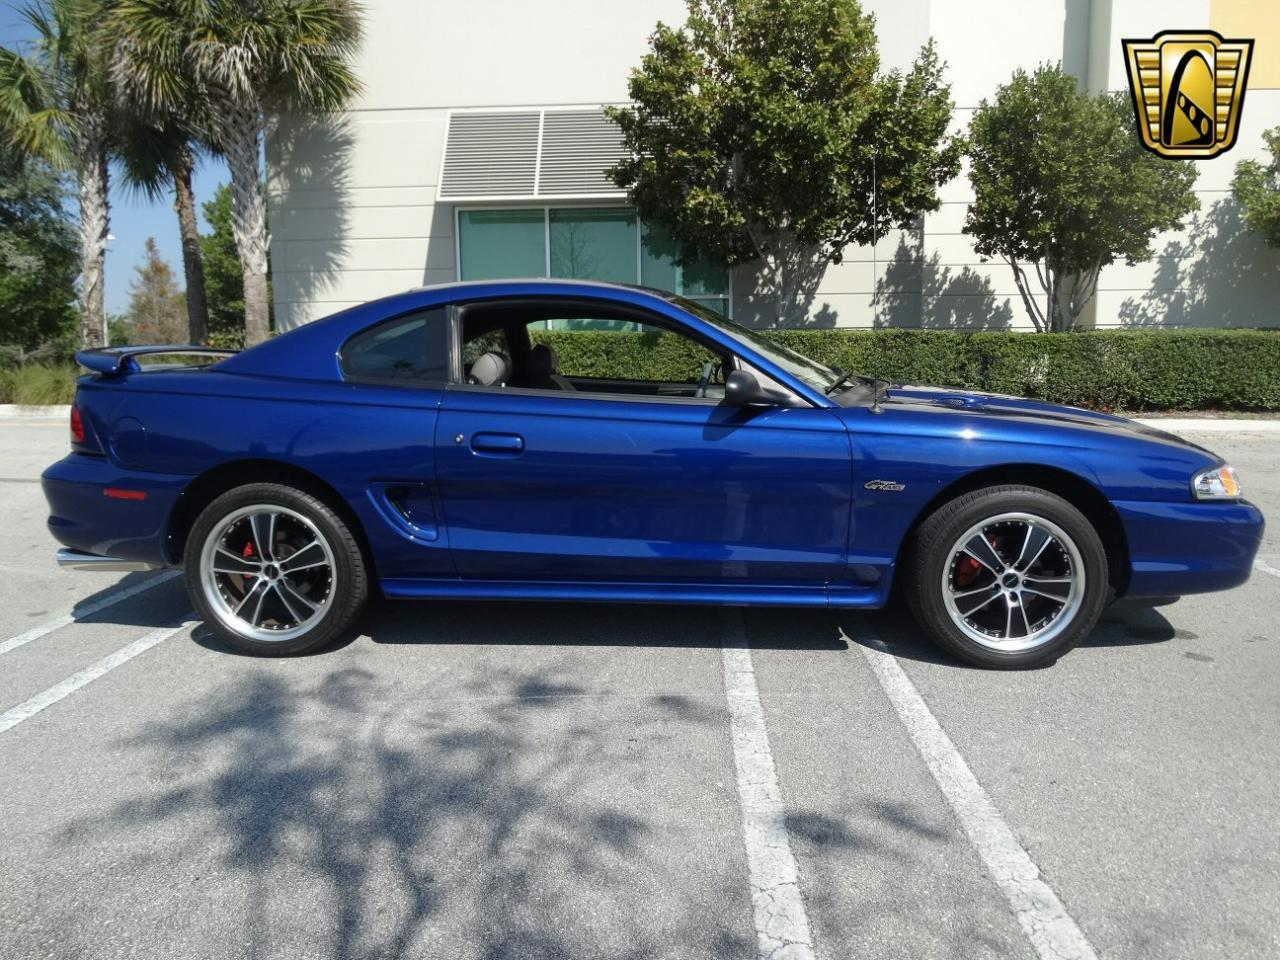 Large Picture of '96 Ford Mustang located in Coral Springs Florida - $9,995.00 - KJ79